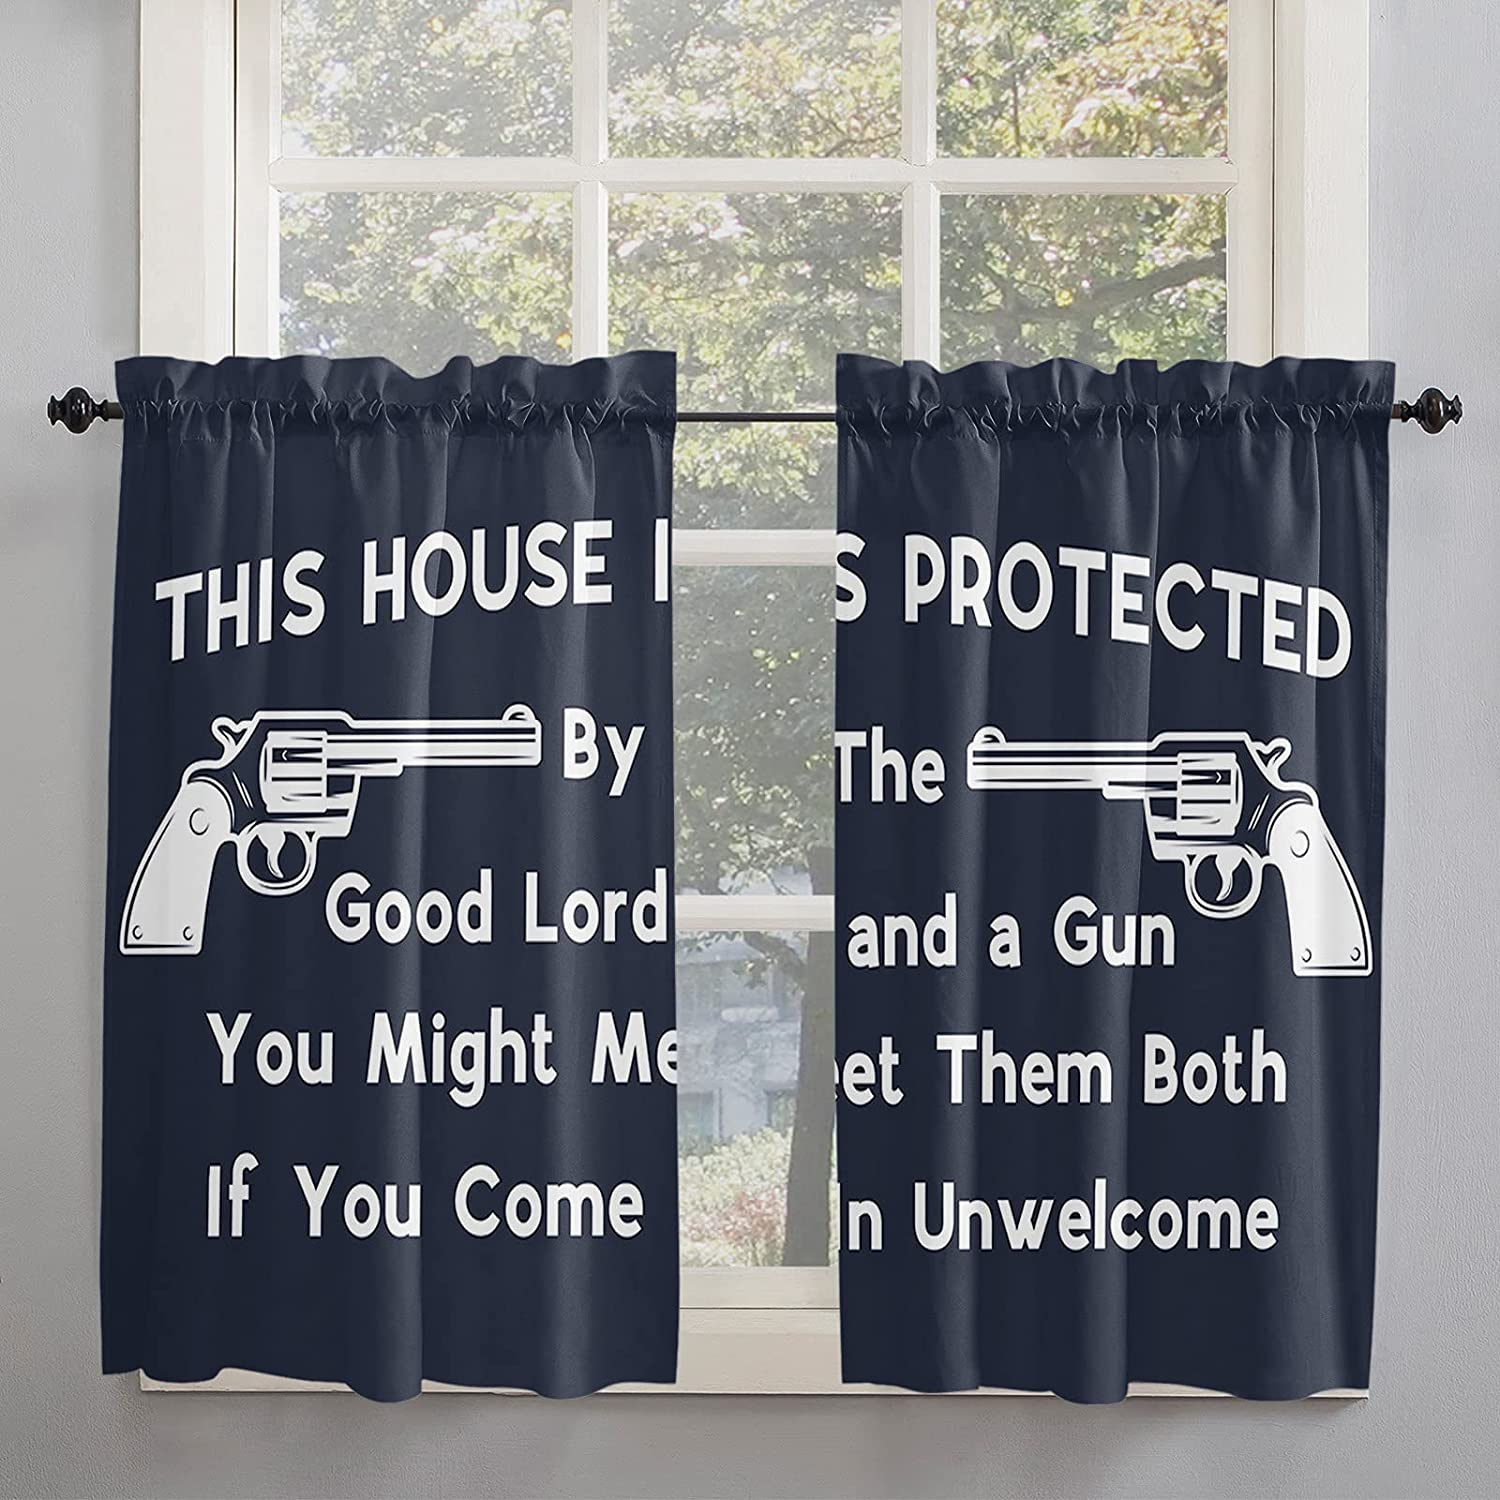 Western Gun Text Theme 2021 new Kitchen Curtains for Windo Ranking TOP11 Length 45 Inch